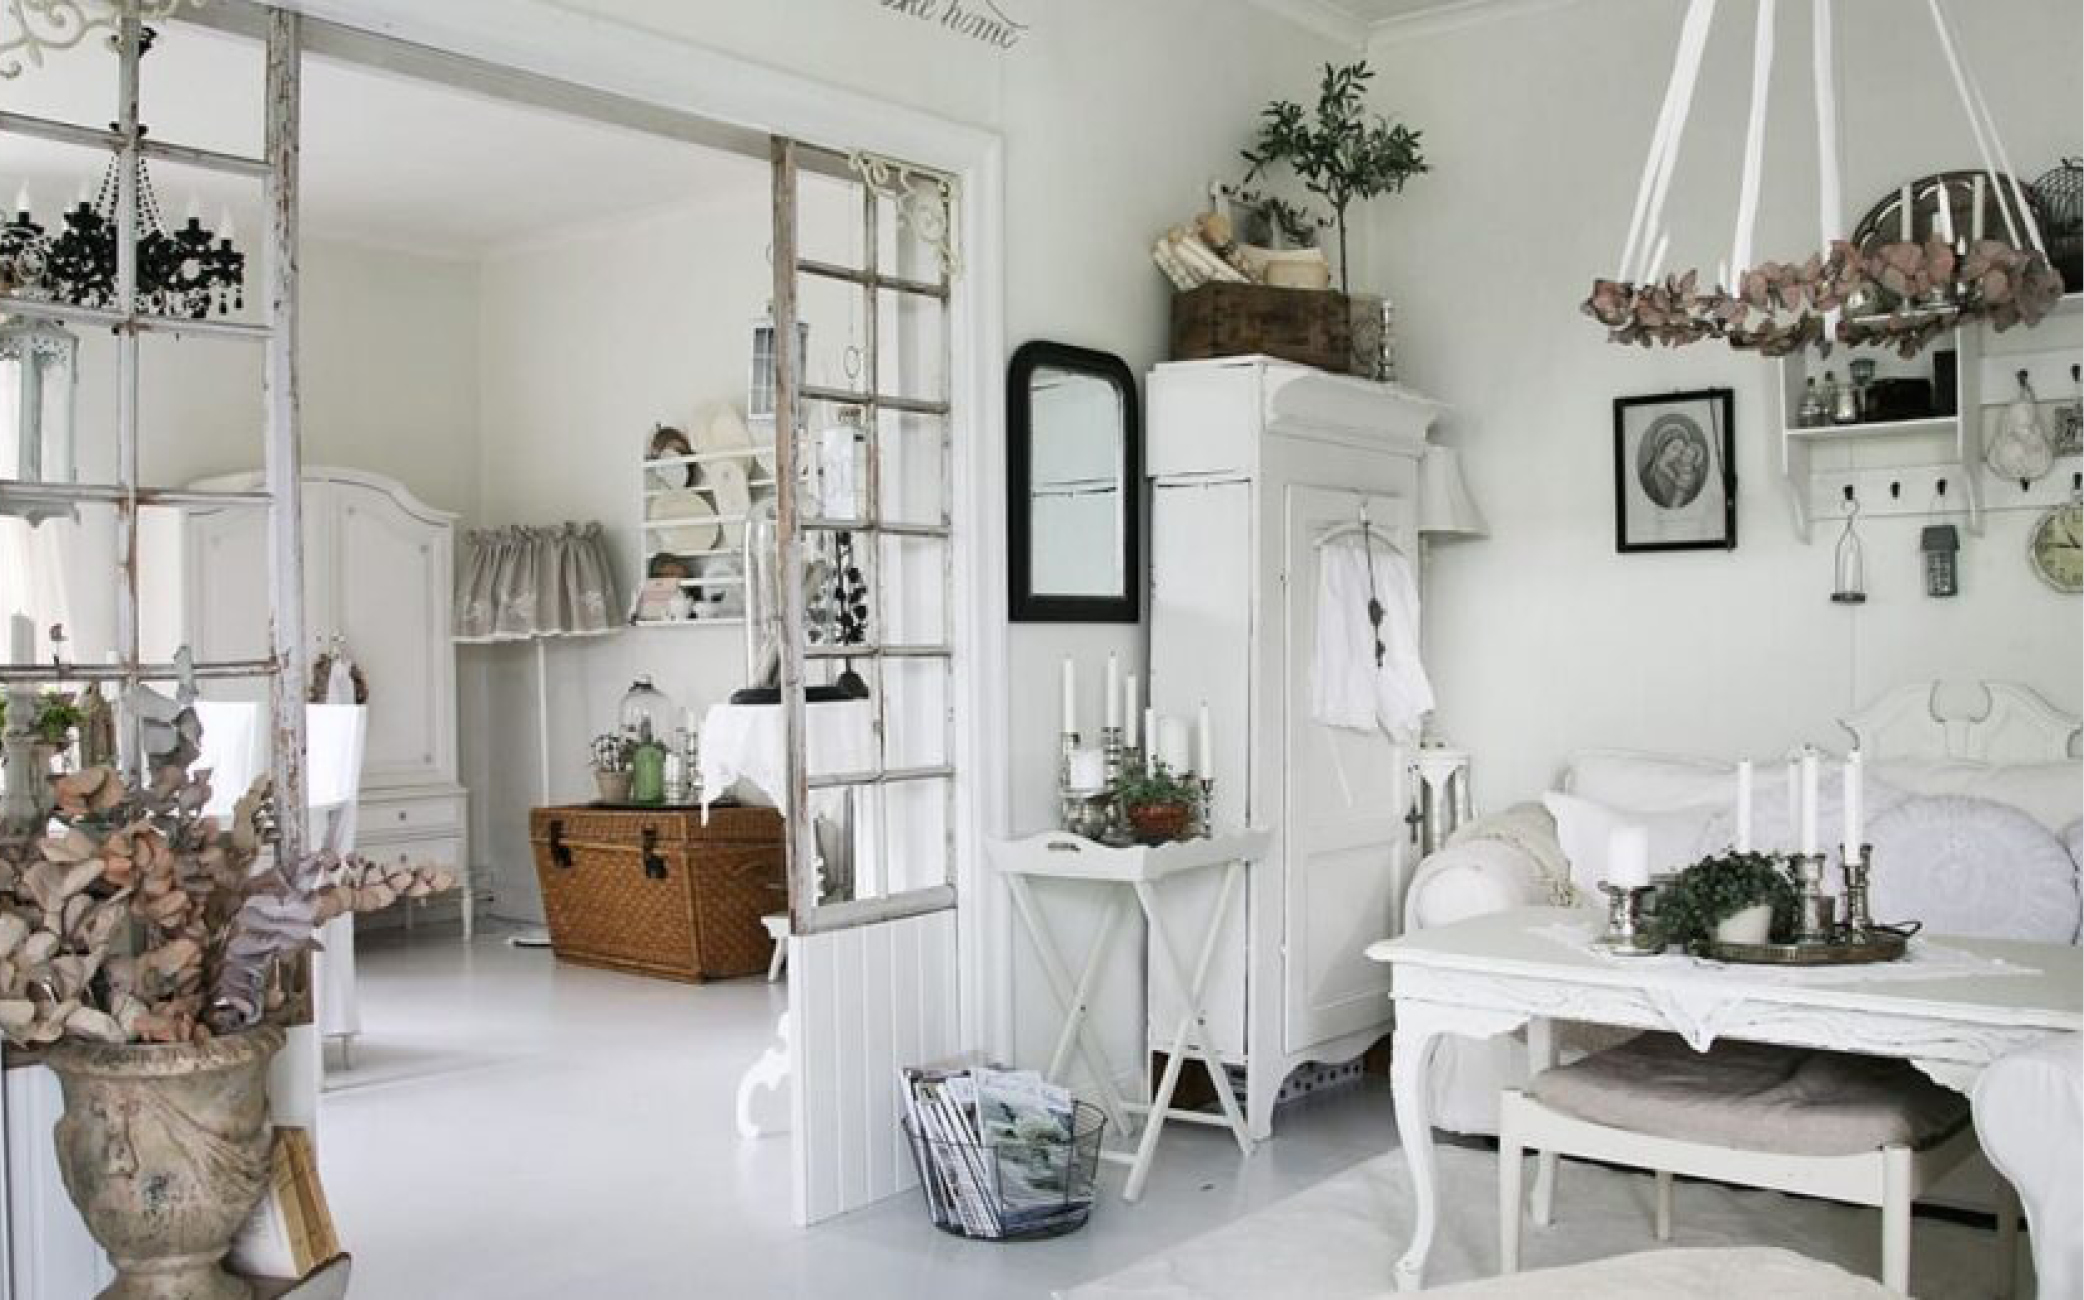 What is shabby chic style?